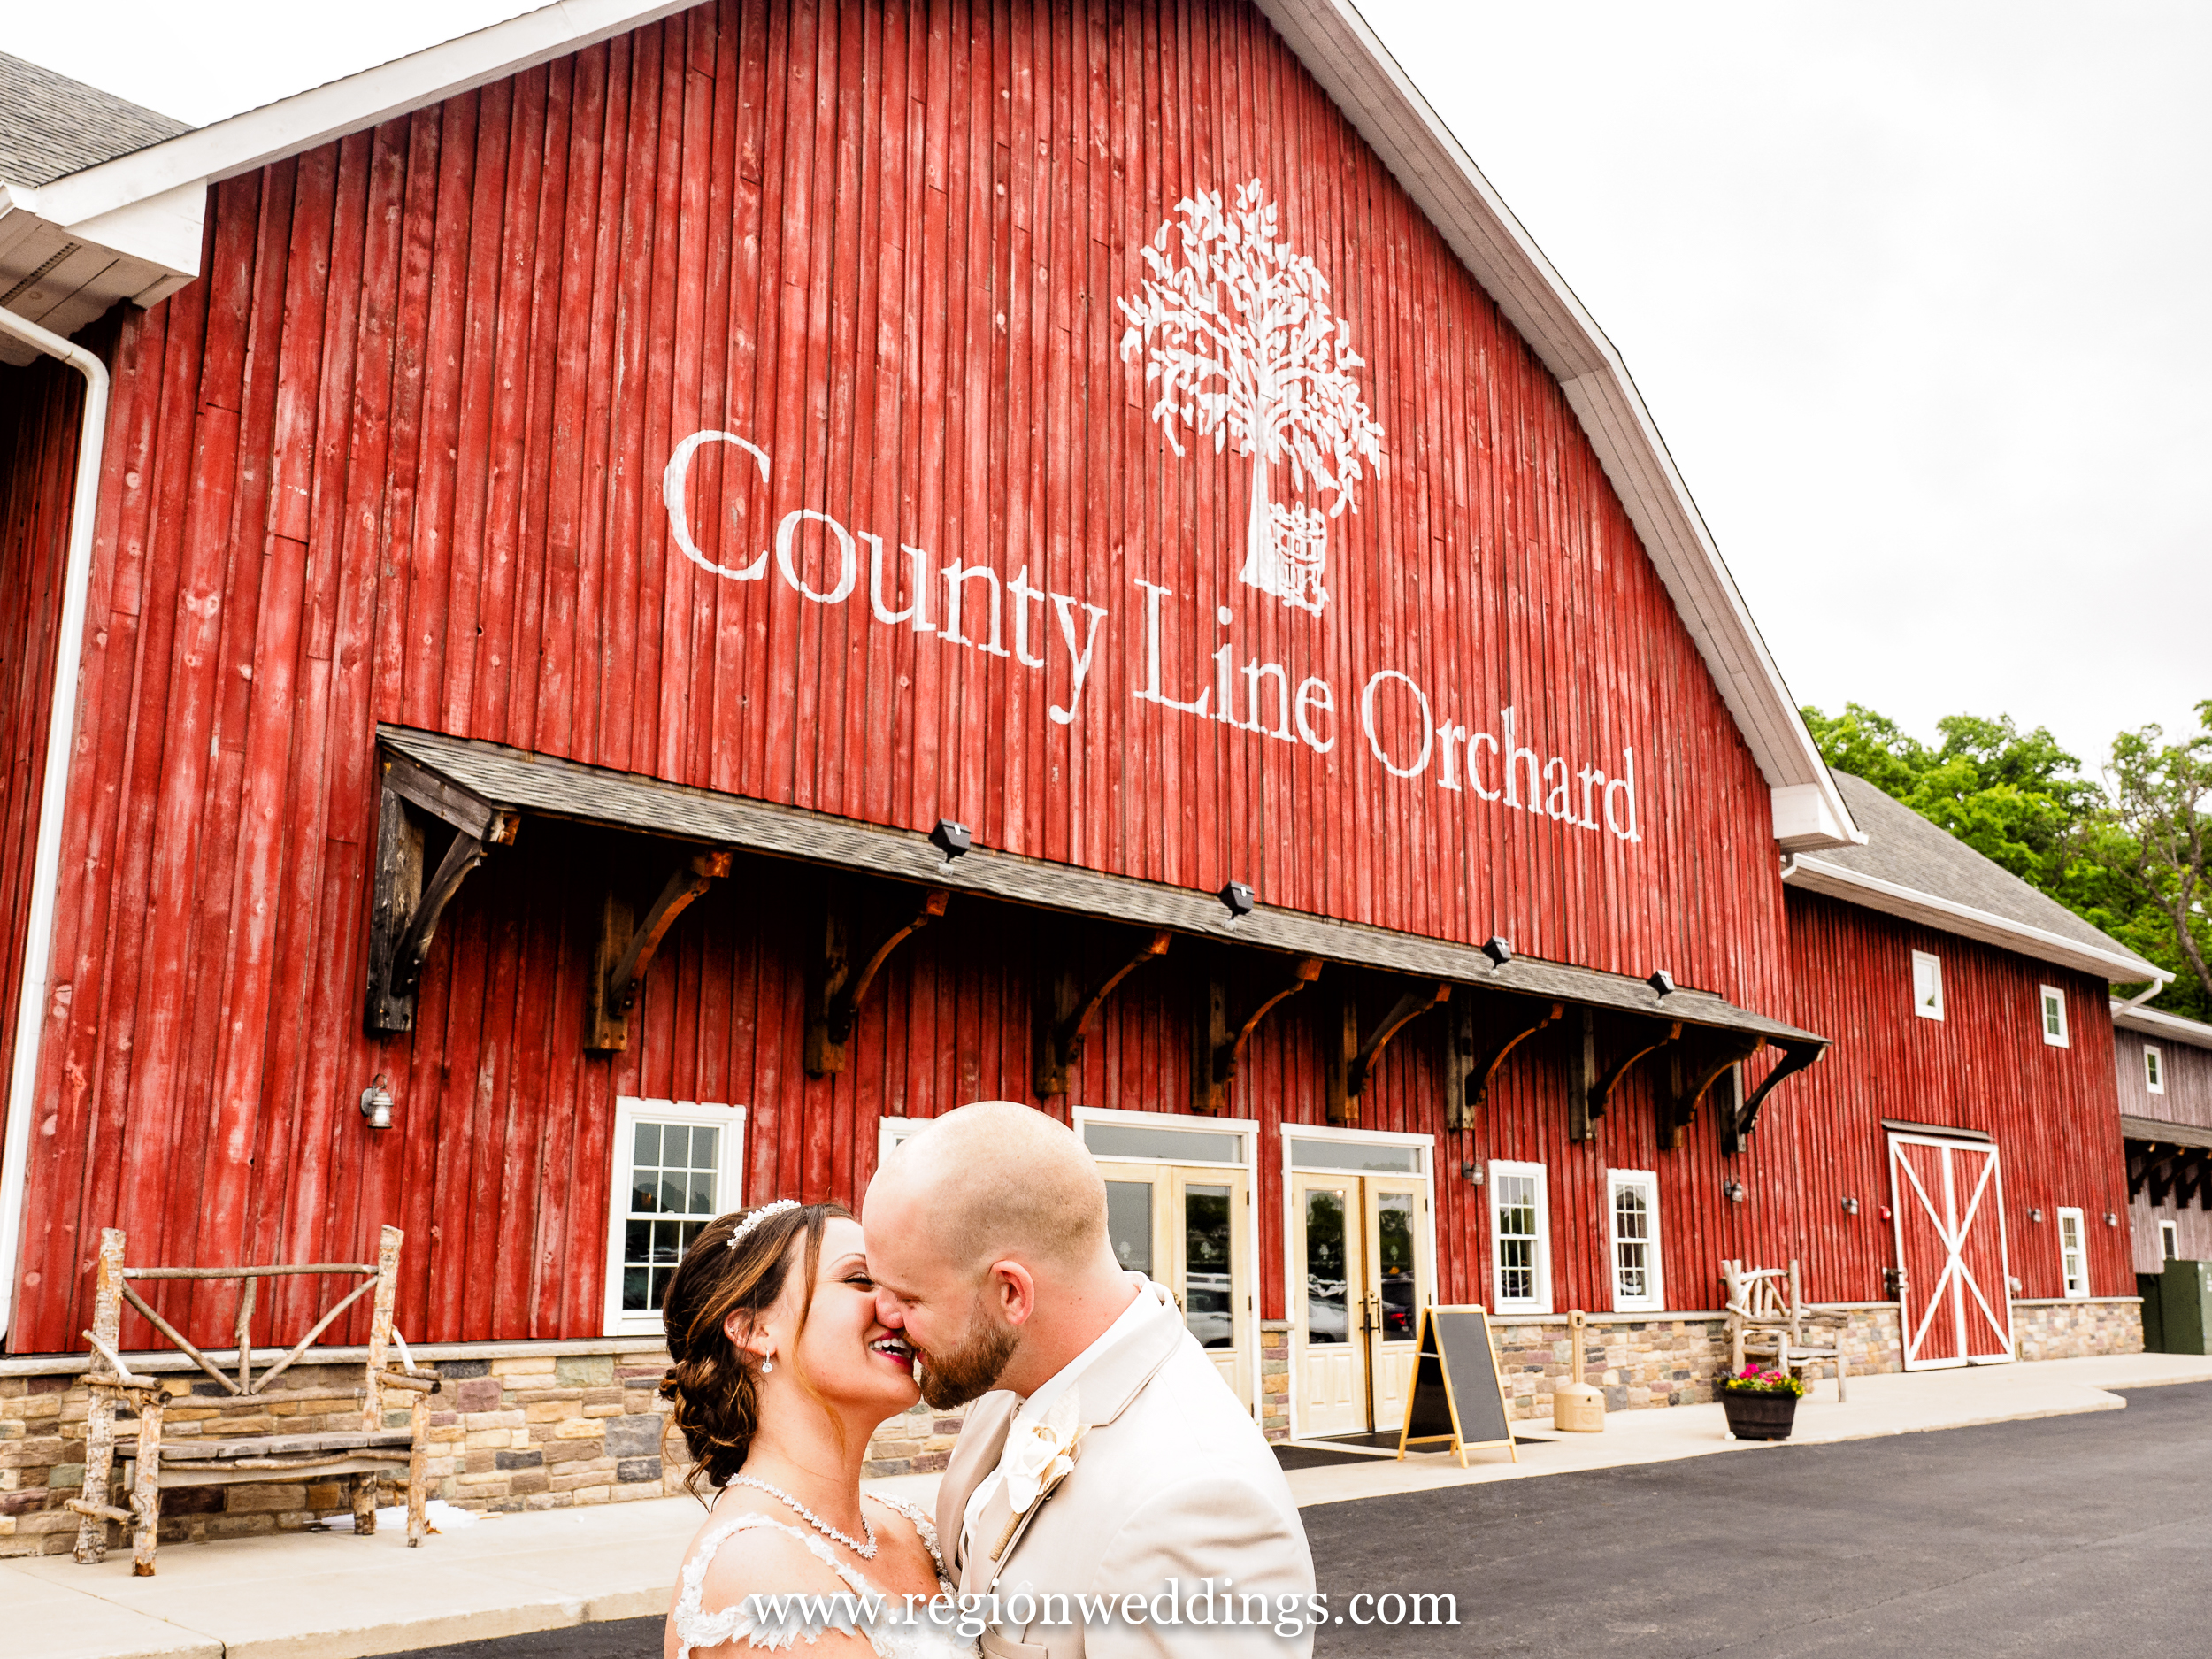 The front entrance to County Line Orchard in Hobart, Indiana.